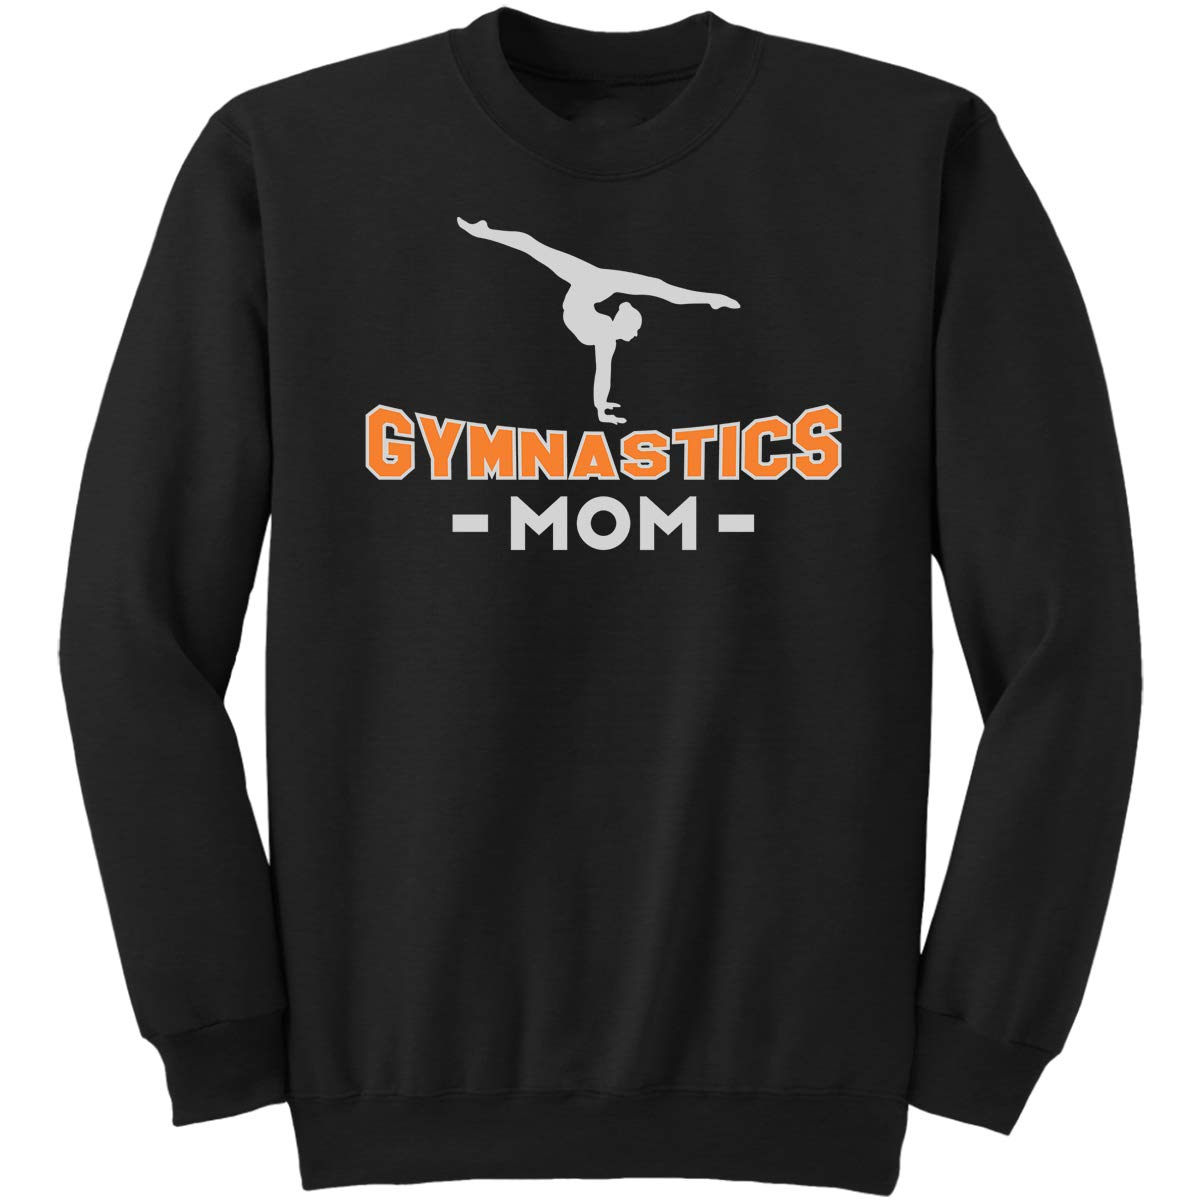 DoozyGifts99 Gymnastics Mom-Giftf Ideas Cute Gym Sweatshirt